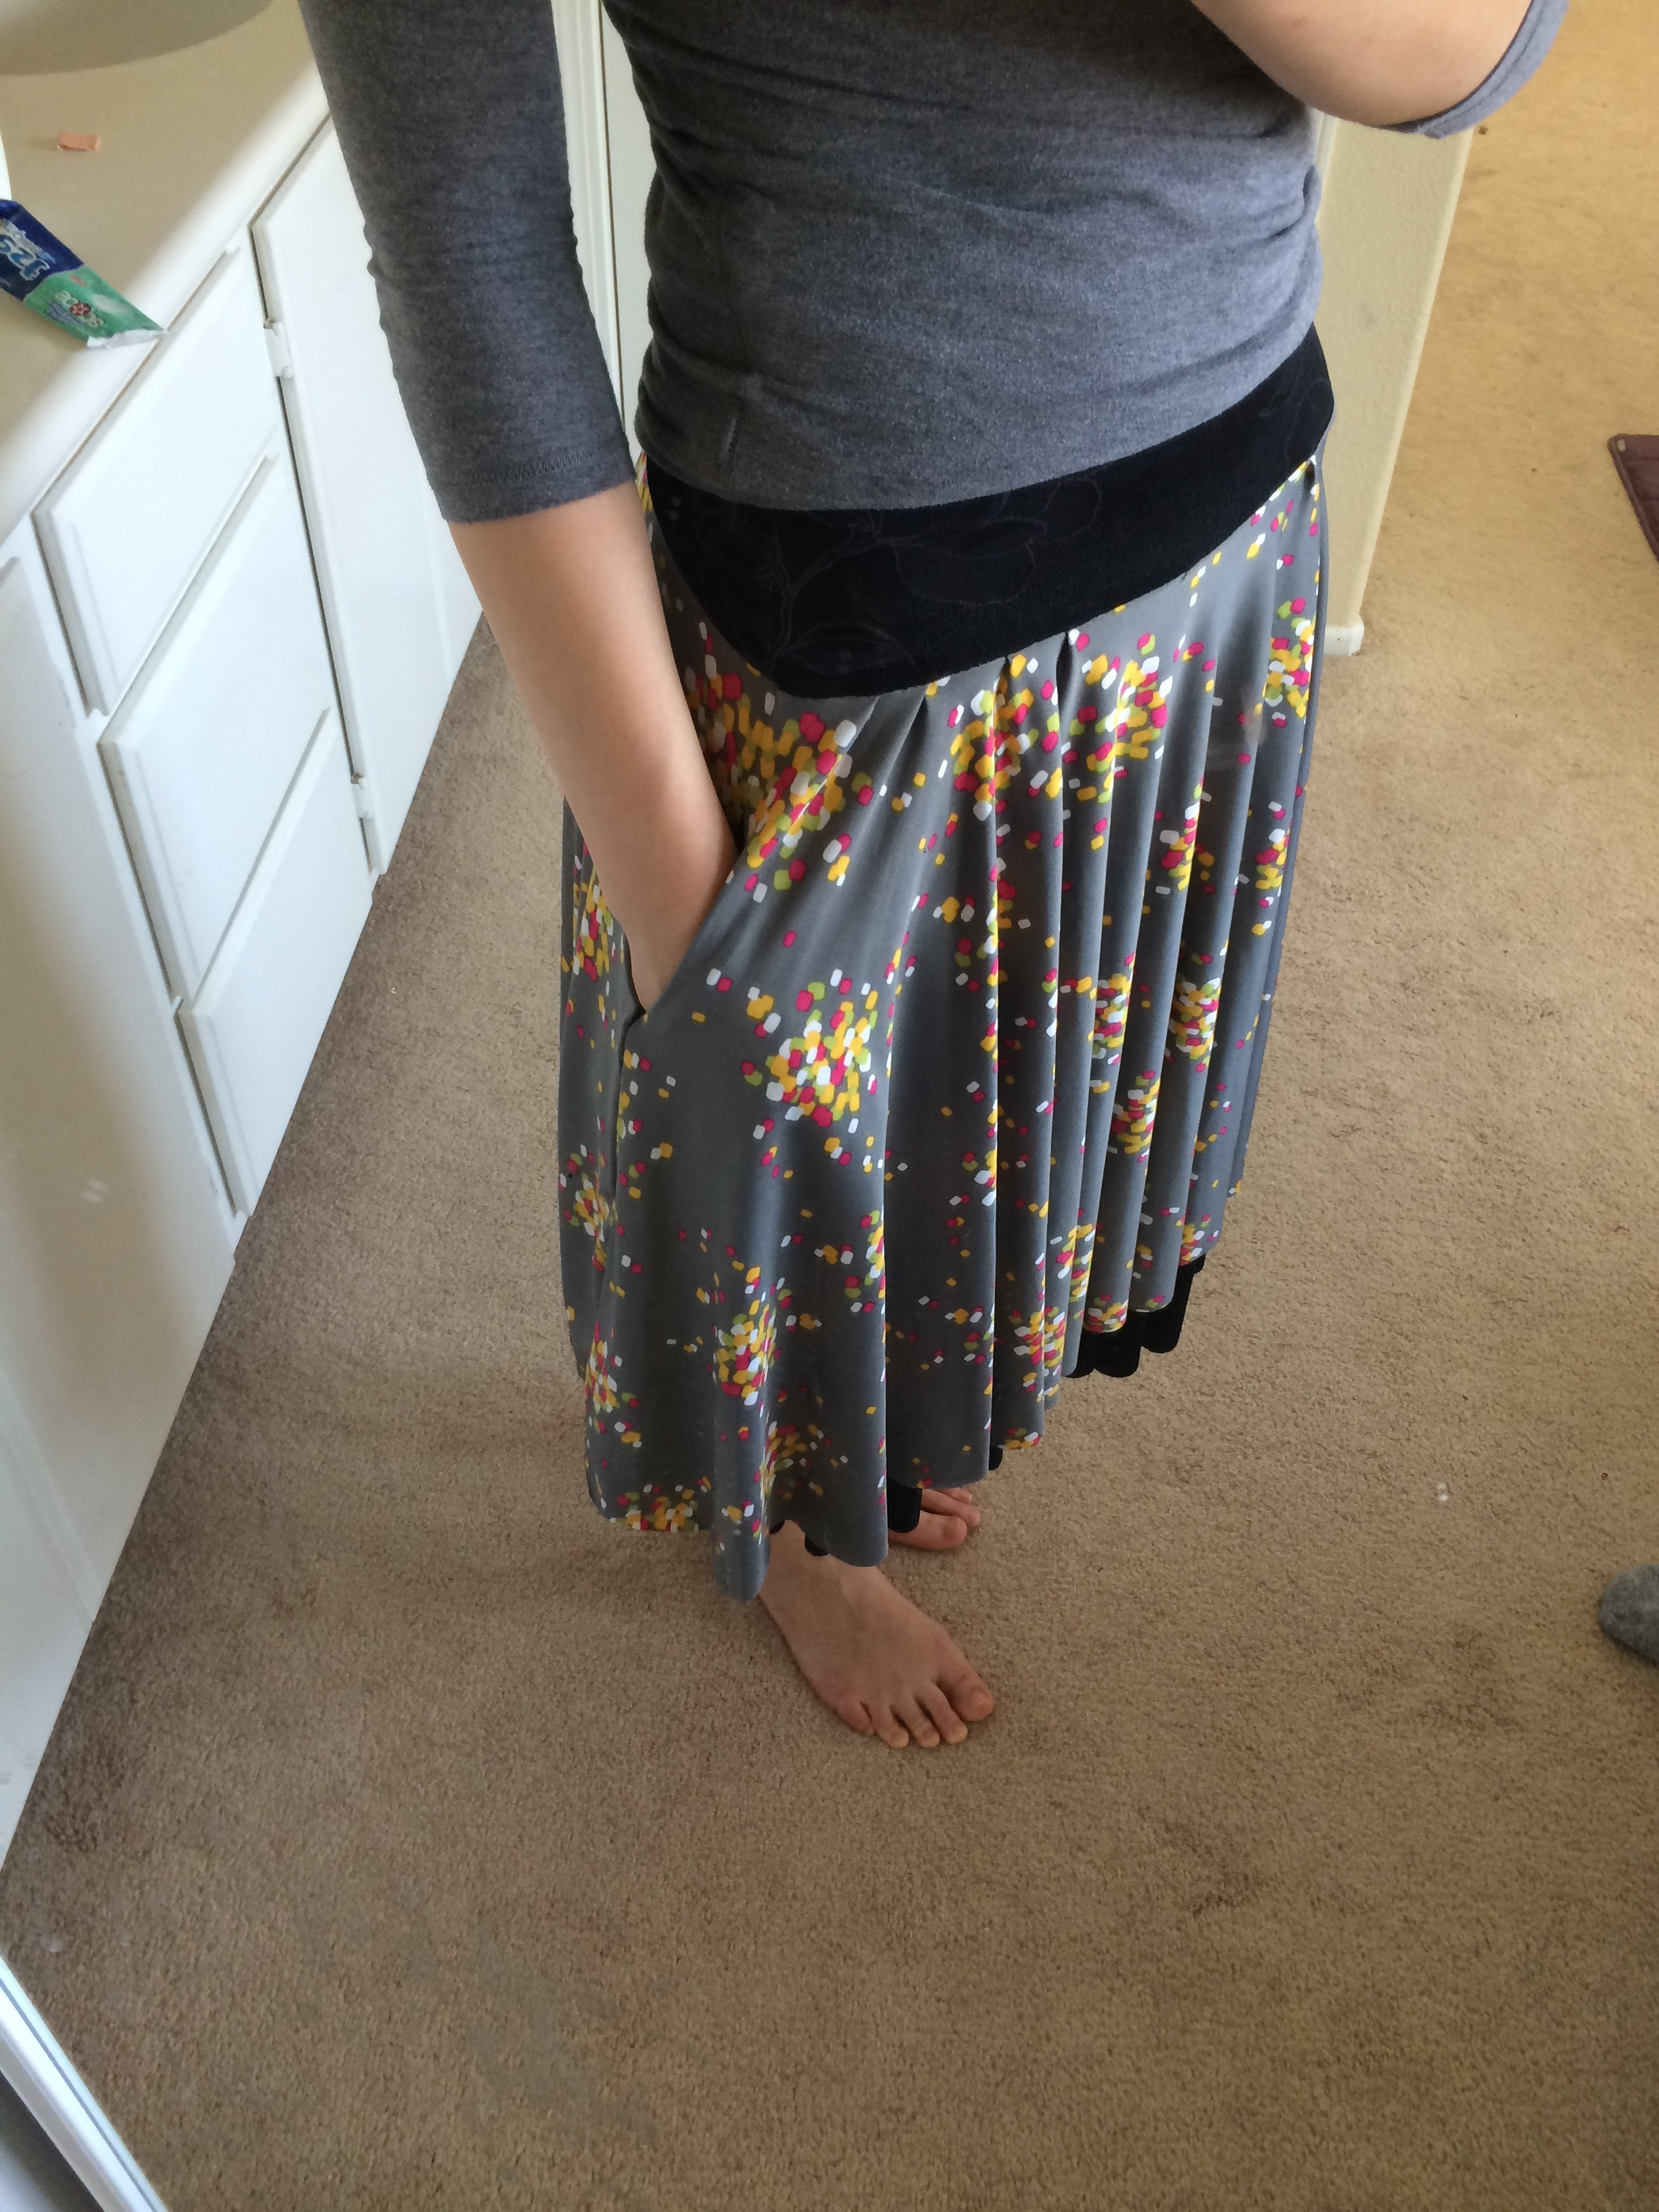 Showing off the pockets. This time I had two inseam pockets on the sides of the skirt instead of the waistband seam.